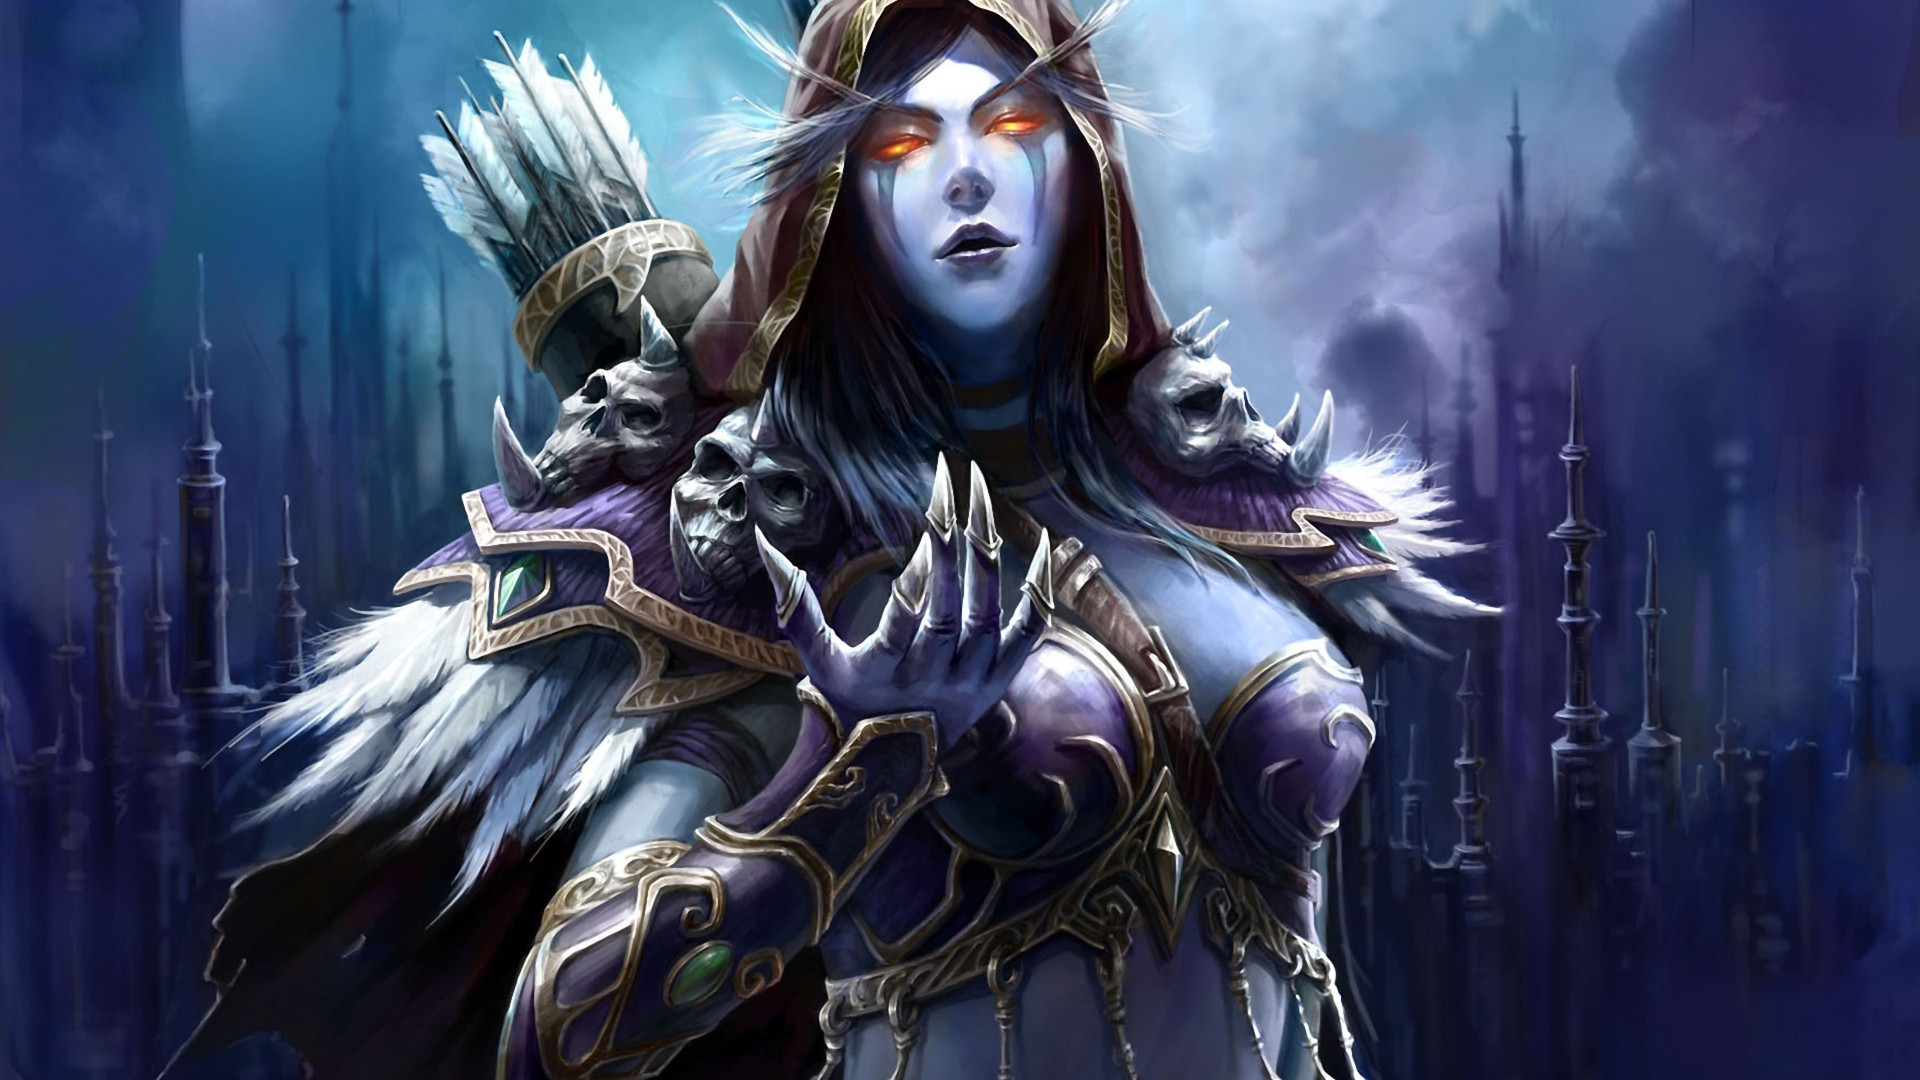 World of Warcraft wallpaper ·â'  Download free HD wallpapers of